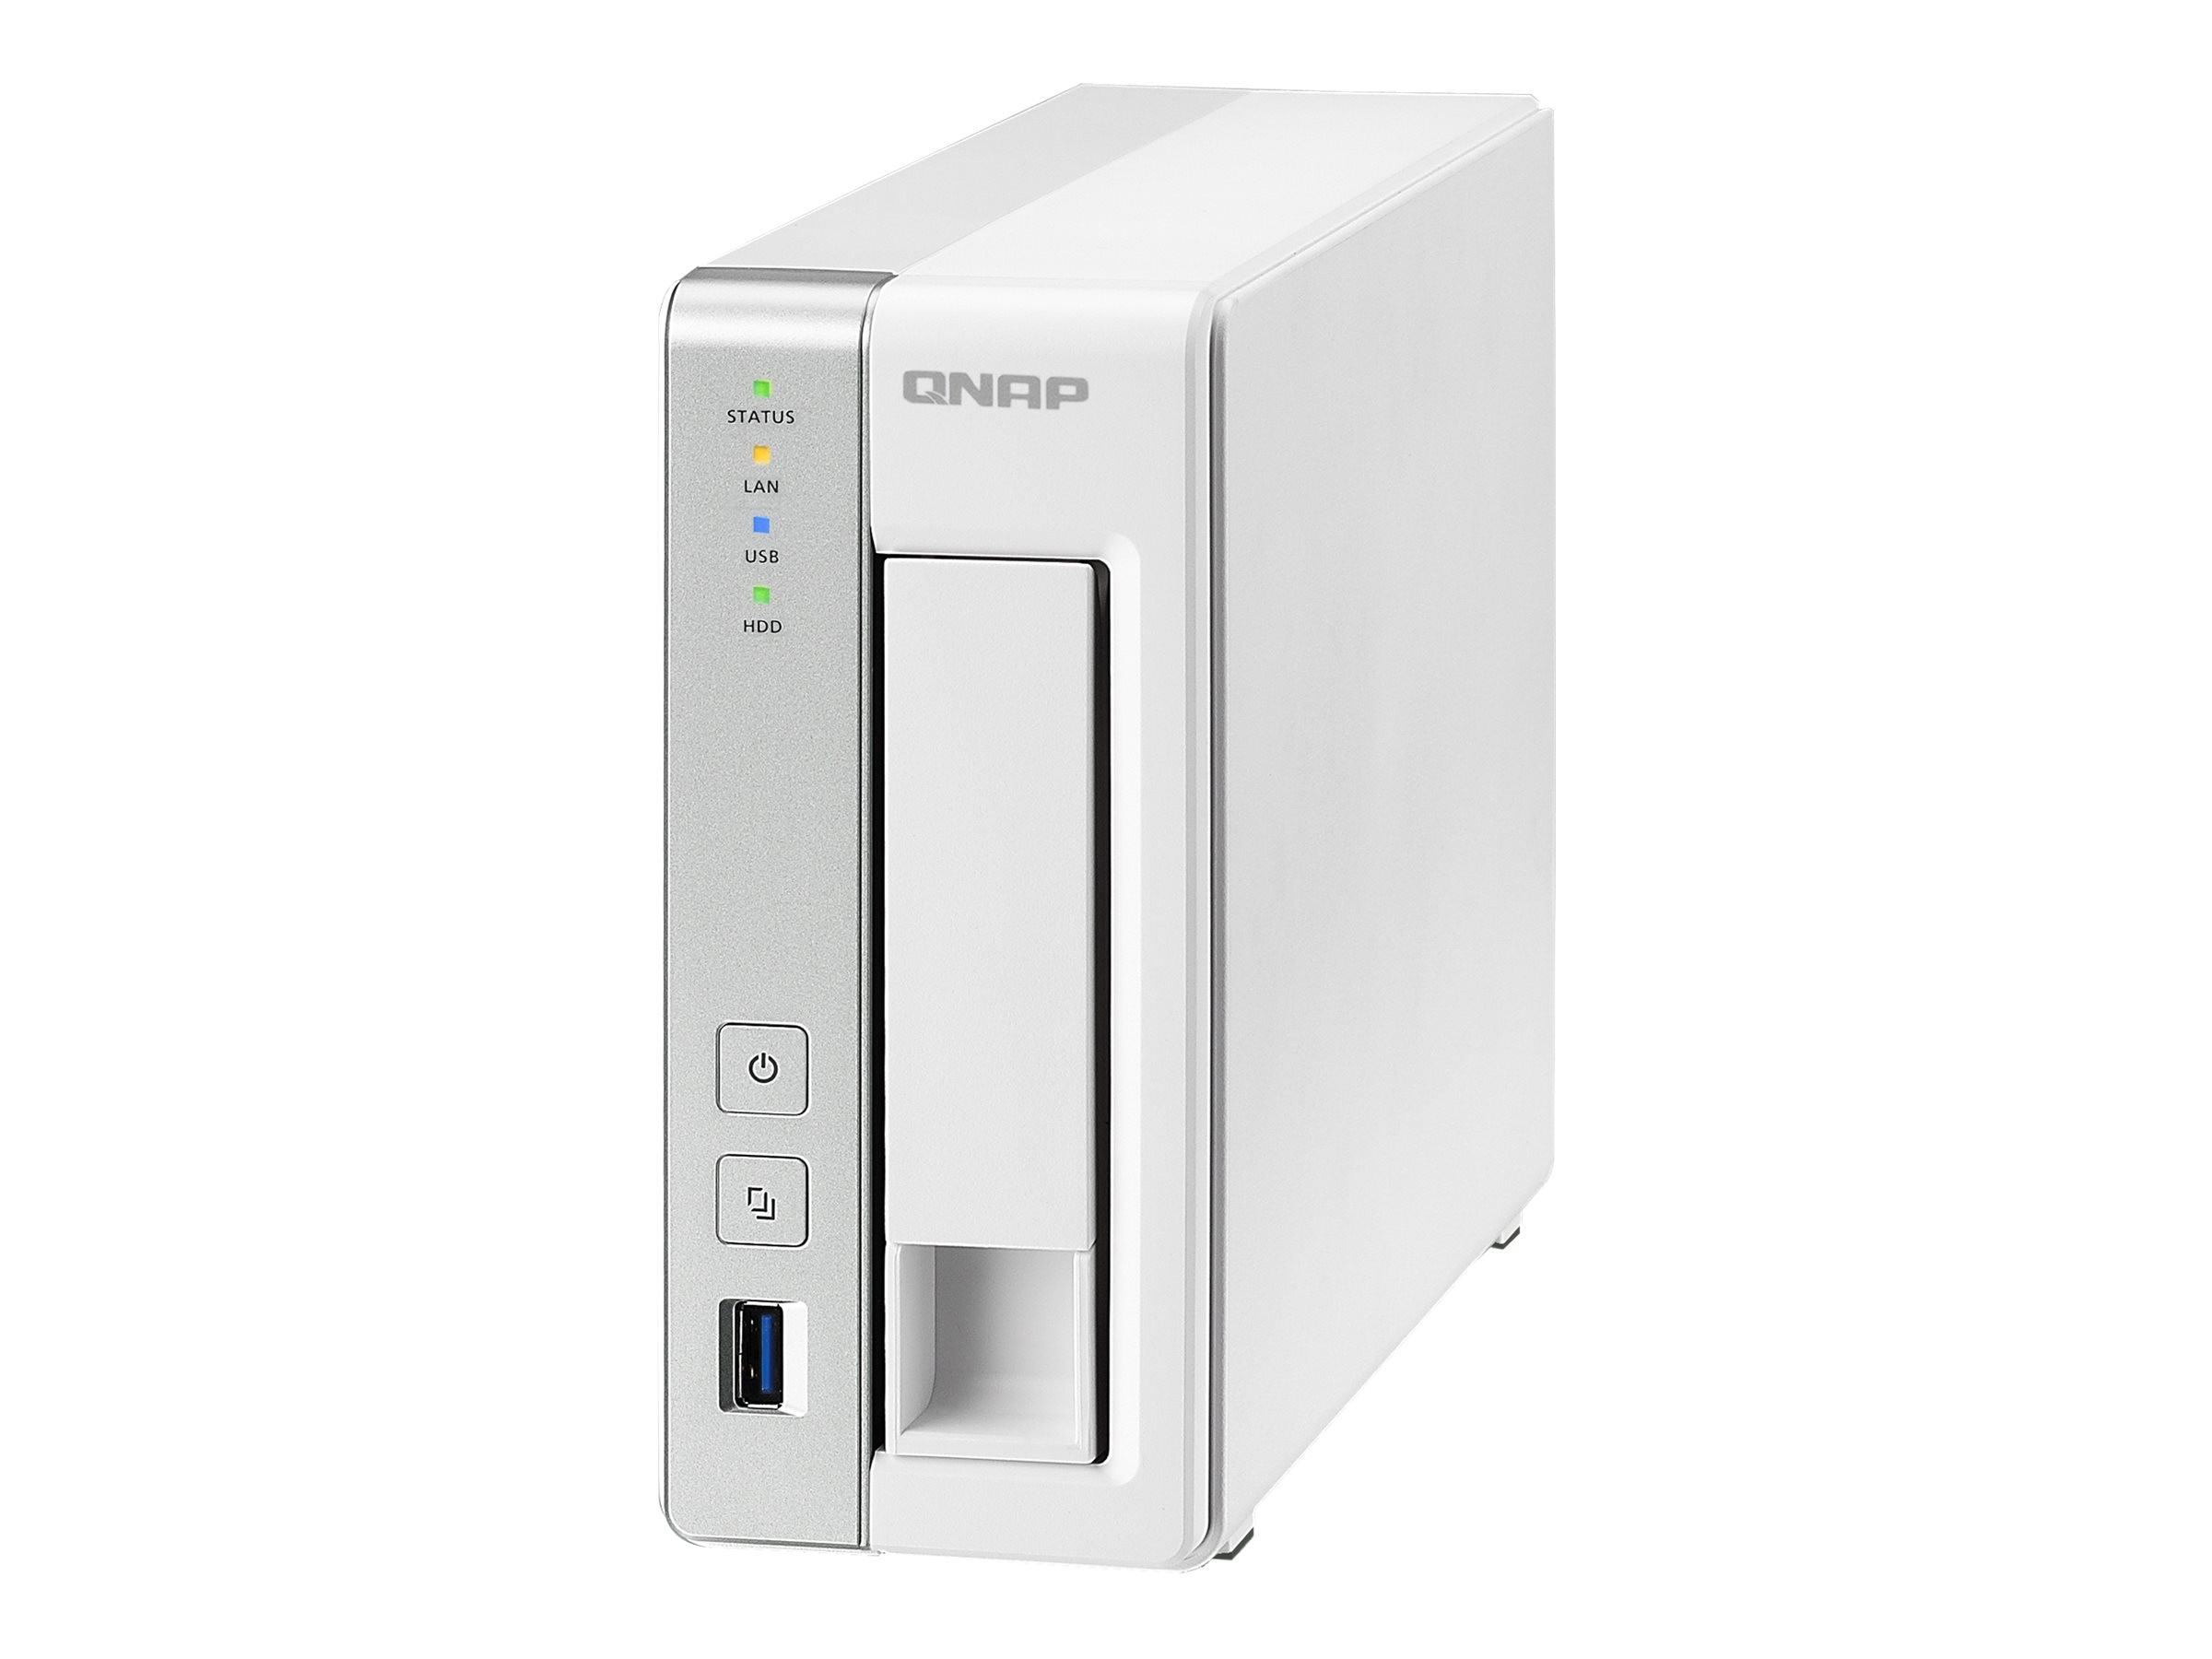 Qnap 1 Bay Personal Cloud NAS